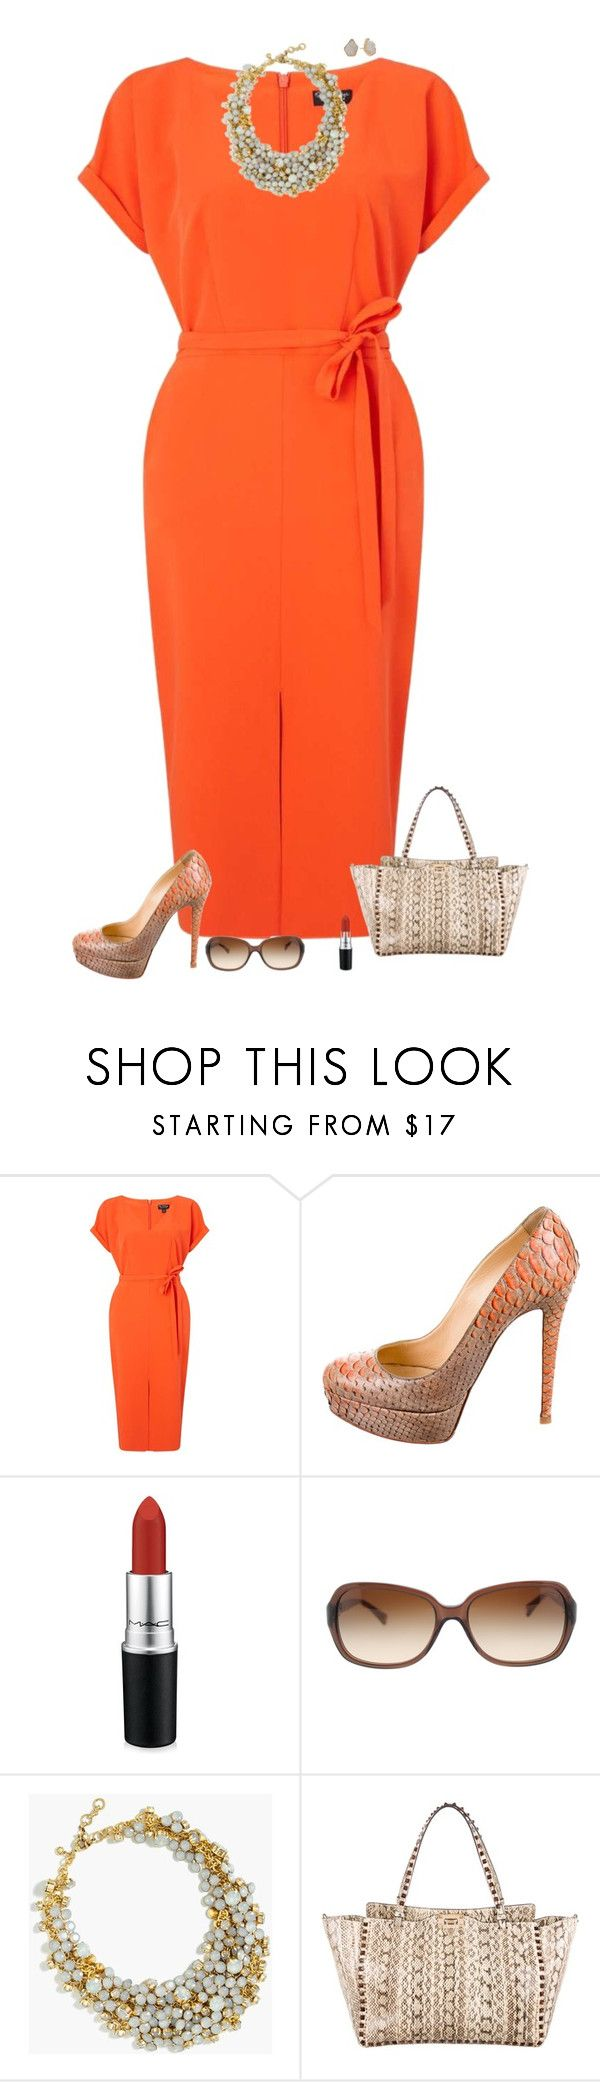 """Orange delight"" by julietajj ❤ liked on Polyvore featuring Miss Selfridge, Christian Louboutin, MAC Cosmetics, Coach, J.Crew, Valentino and Kendra Scott"